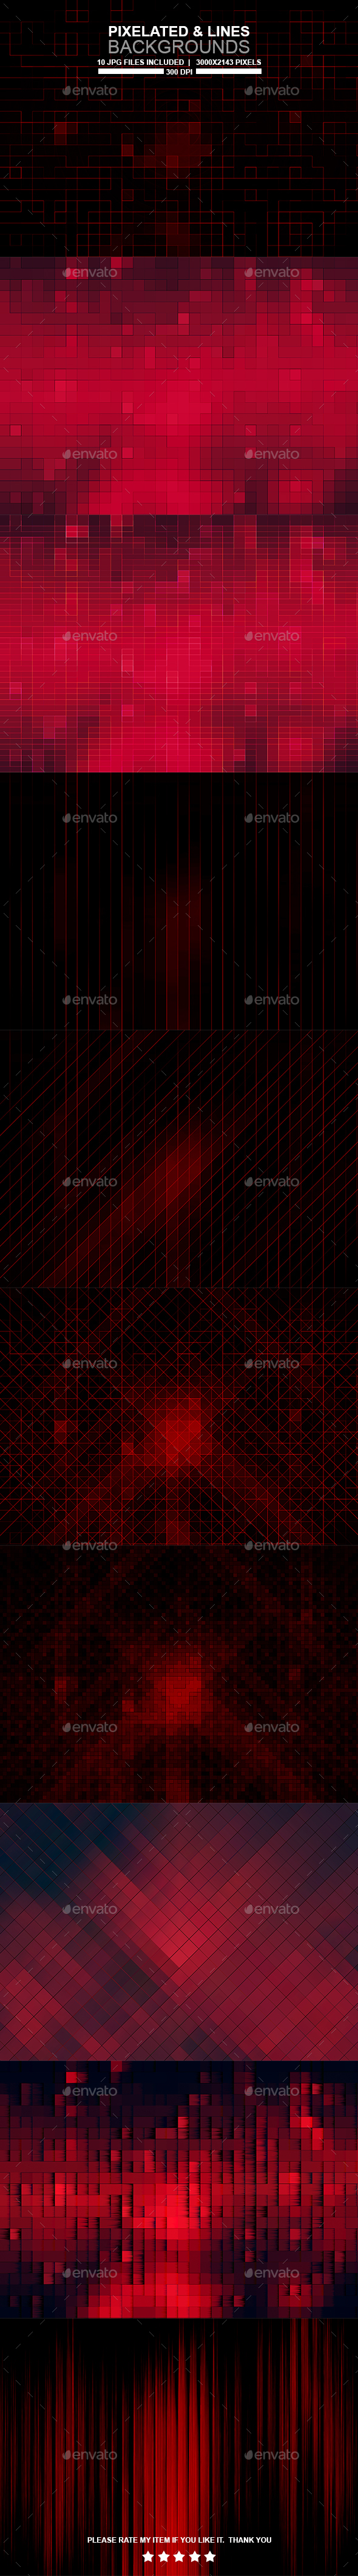 Pixelated and Line Backgrounds - Backgrounds Graphics